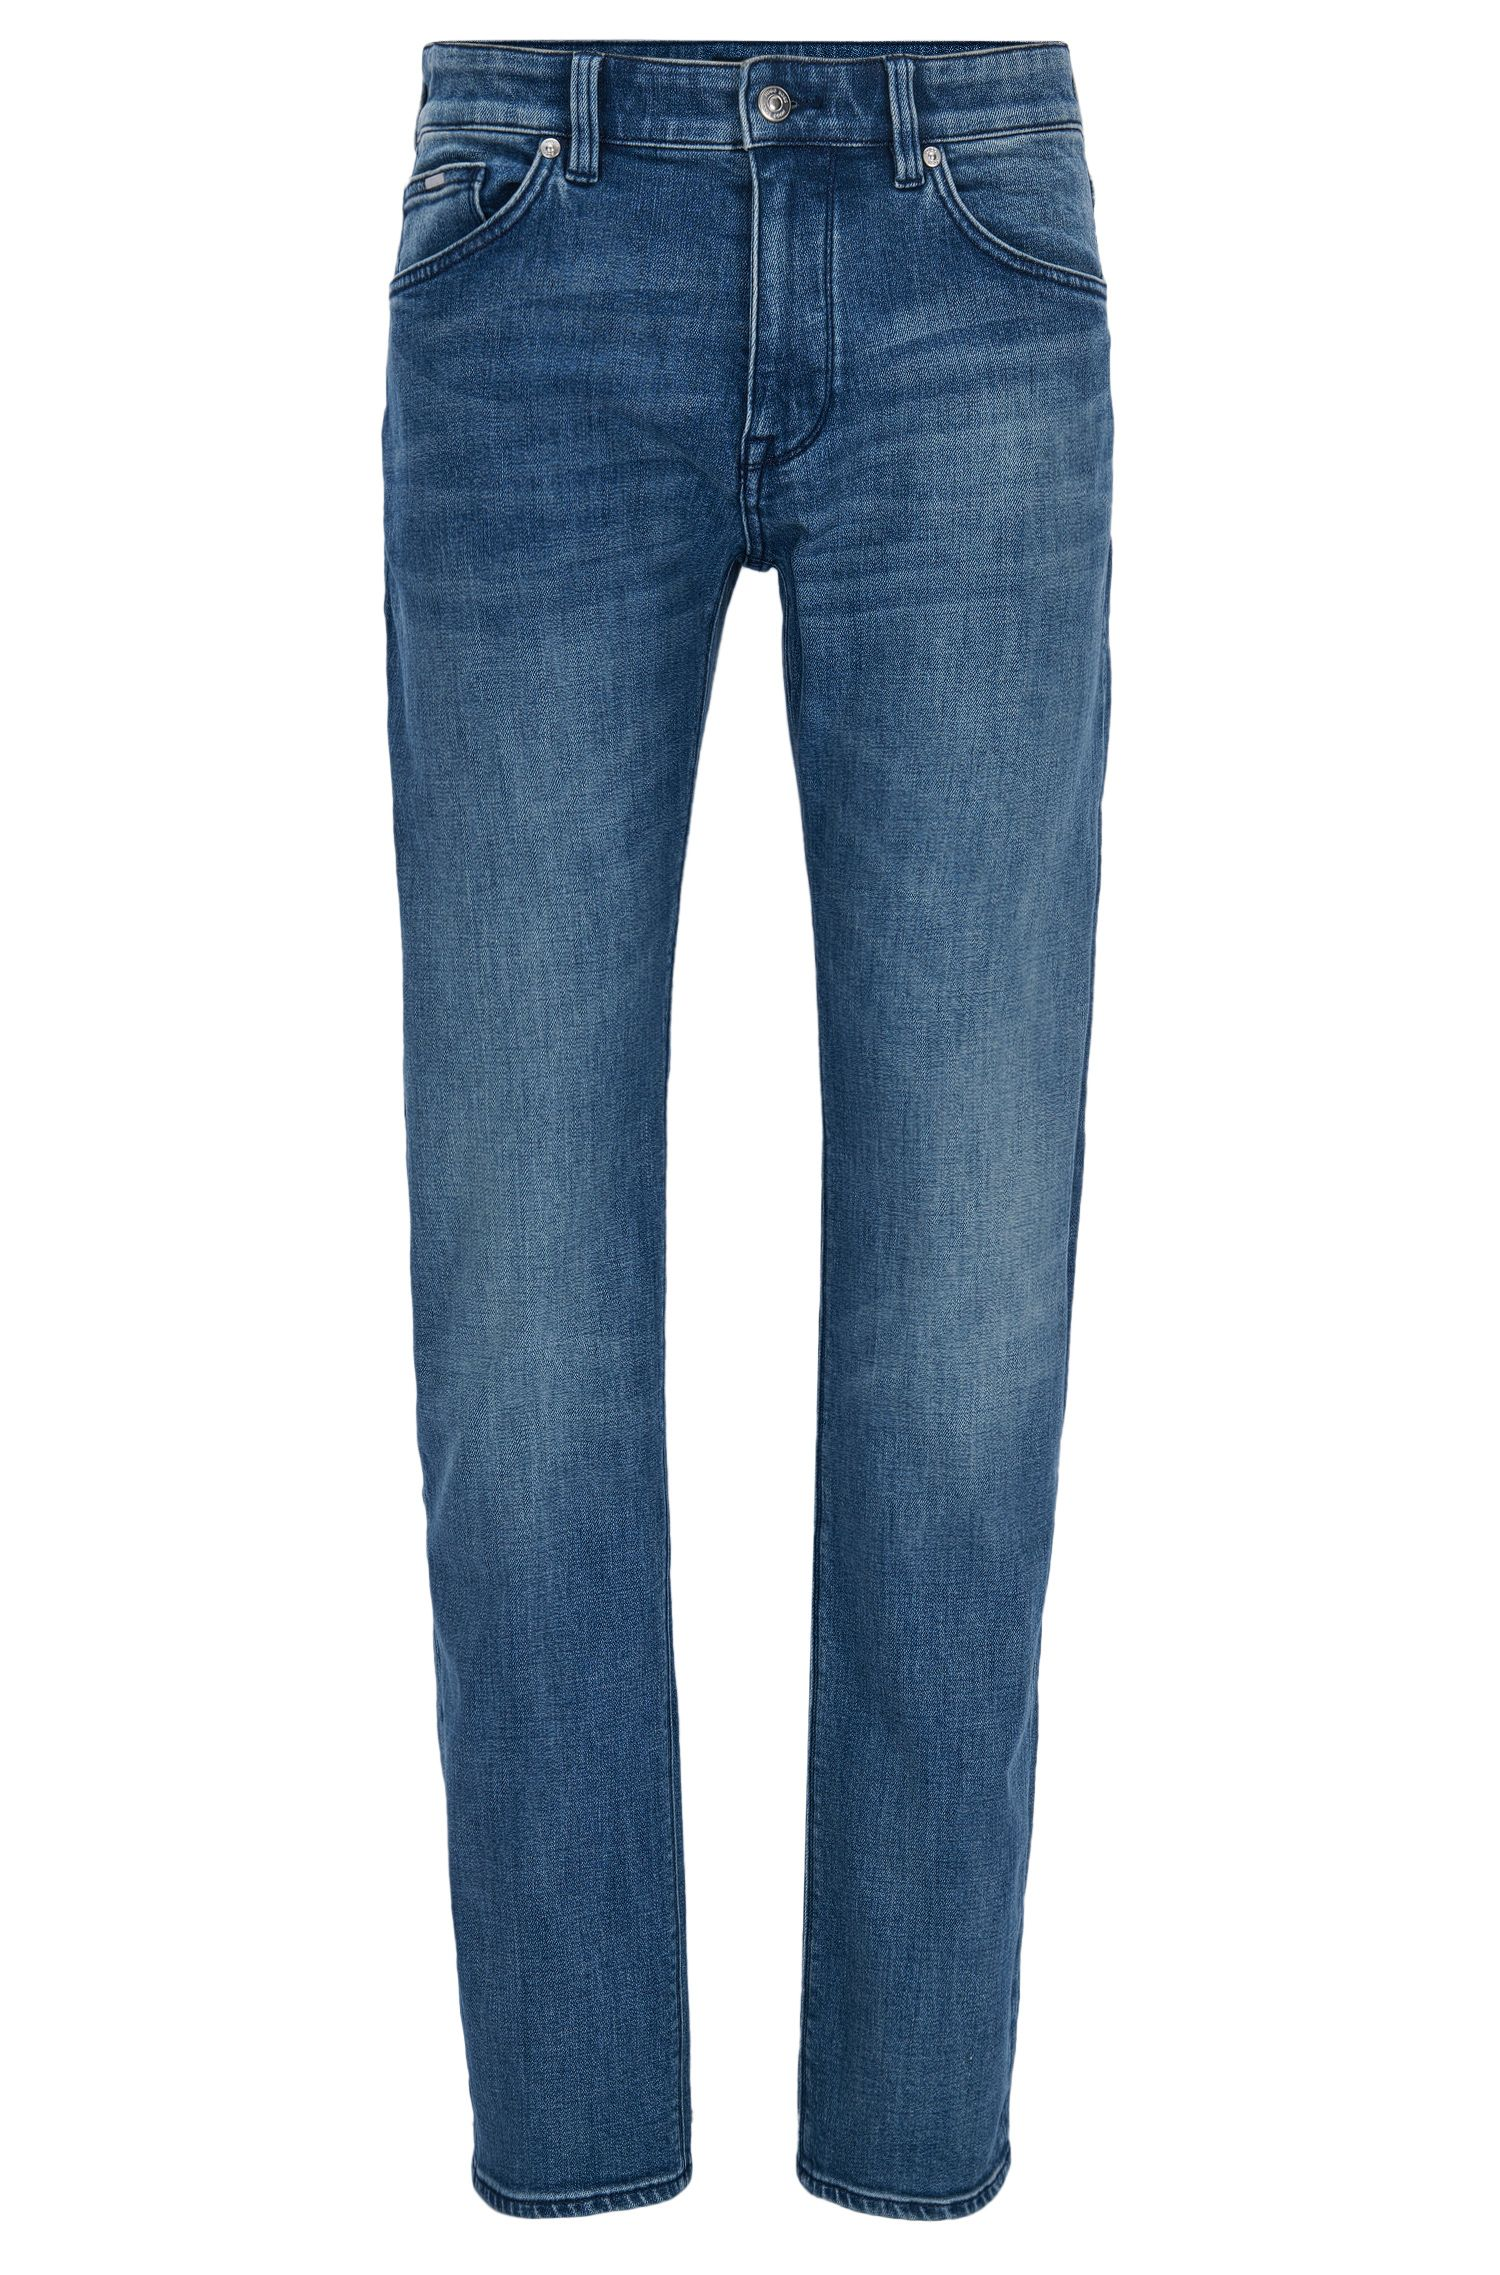 Jeans Regular Fit bleu foncé en denim stretch délavé